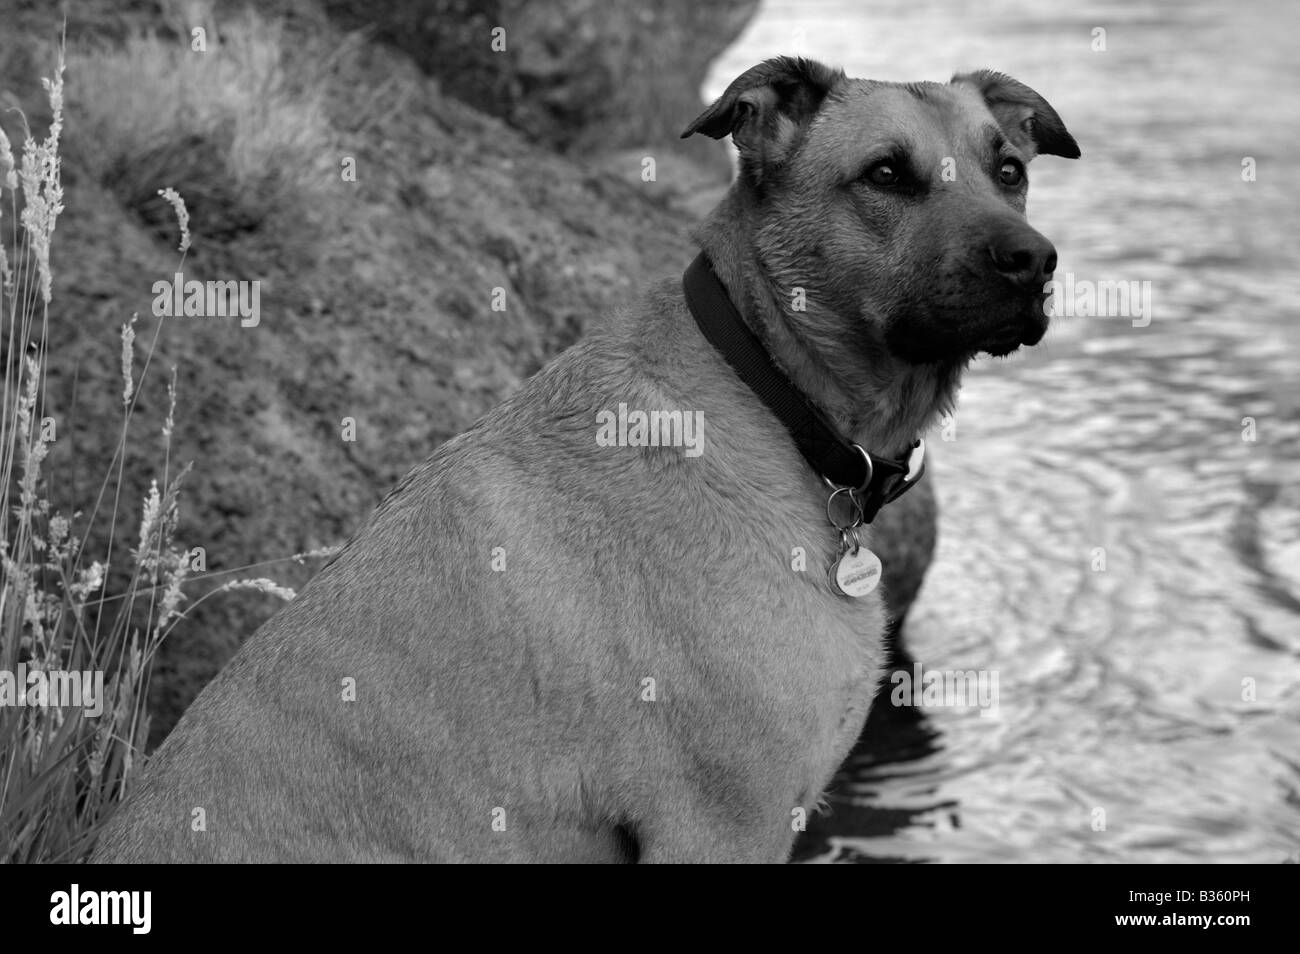 A black and white photo of a big brown dog looks regally off into the distance on the bank of a mountain river. Stock Photo